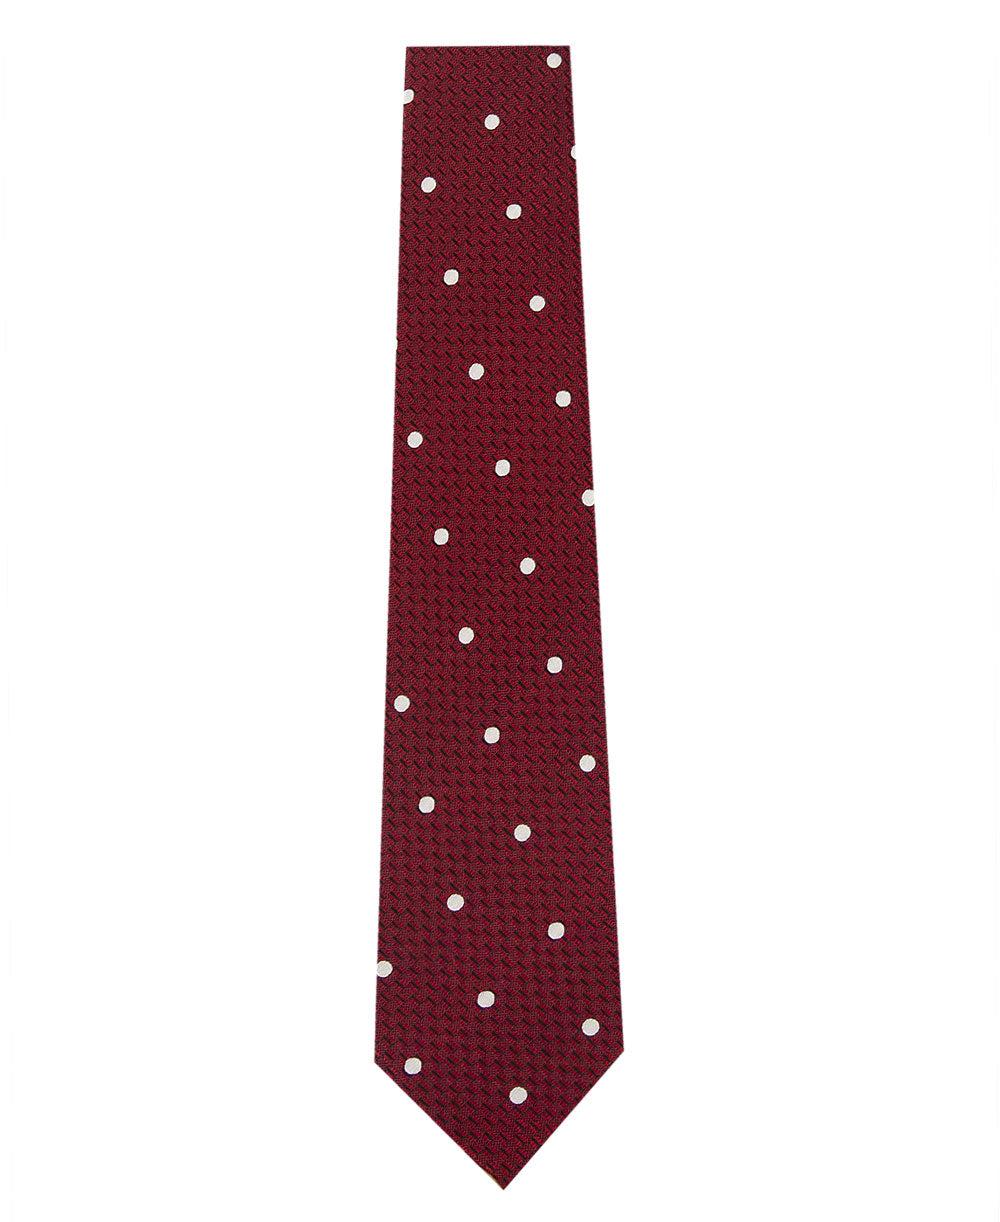 Red and White Polka Dot Silk Tie Long